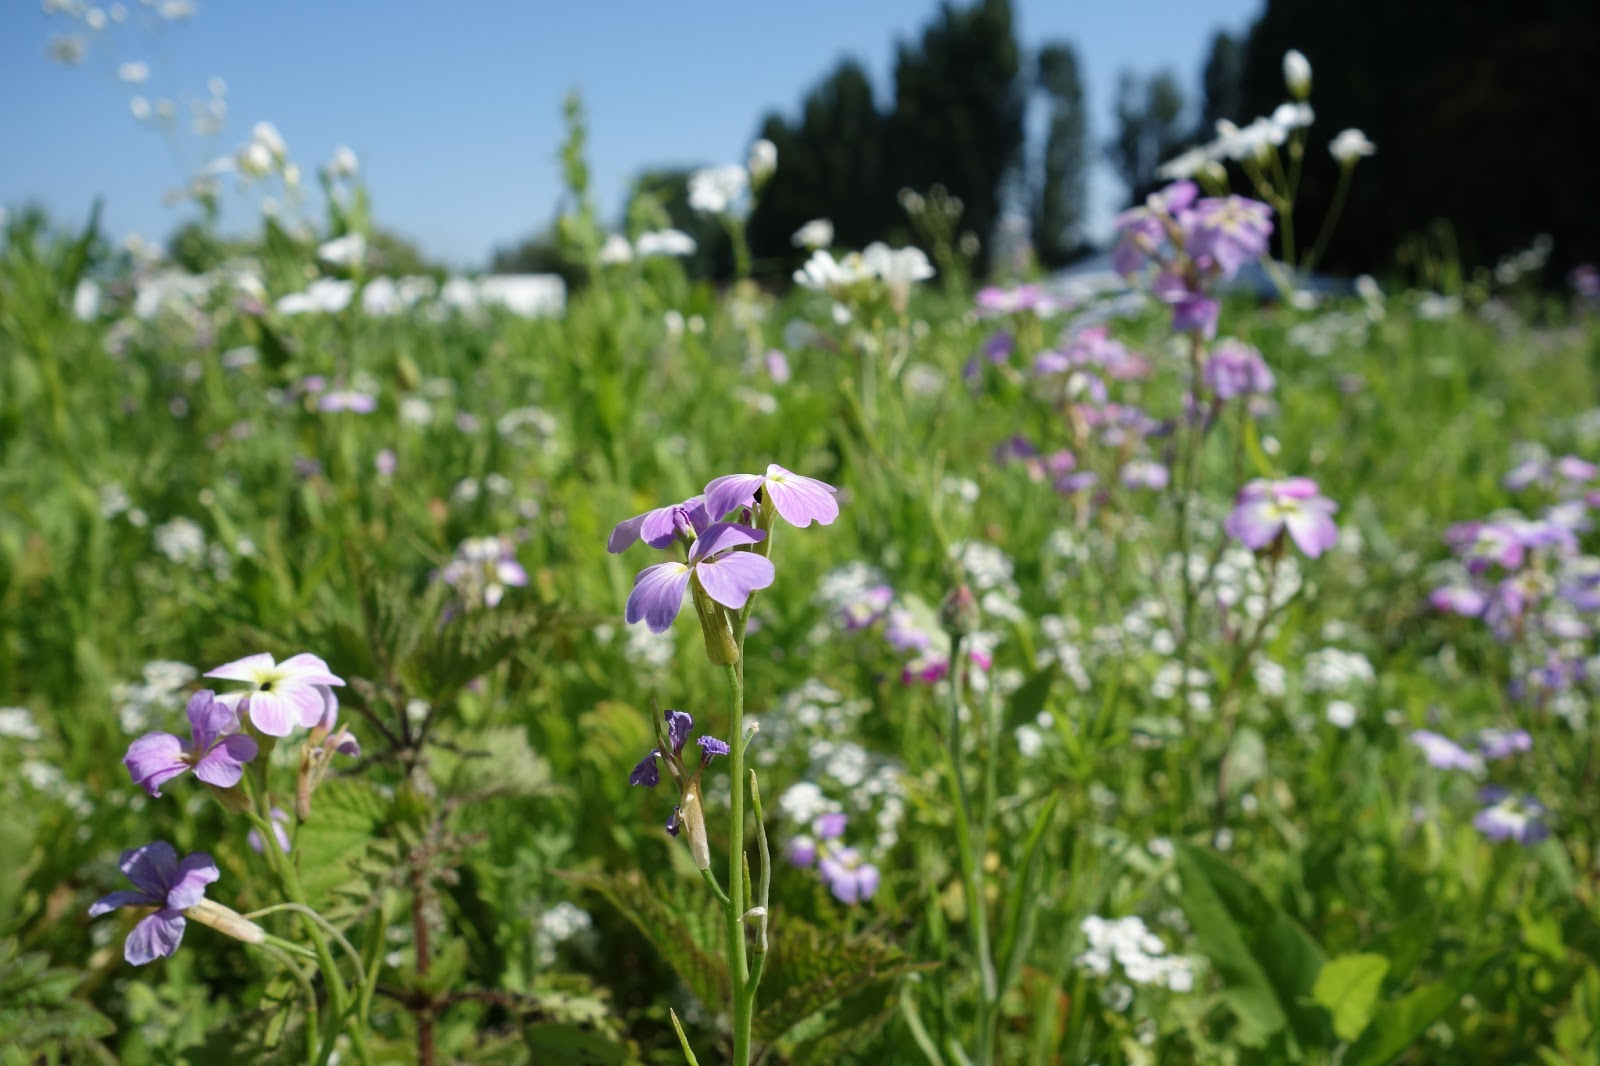 Urban pollinators july 2013 what plants are flowering in our annual meadows mightylinksfo